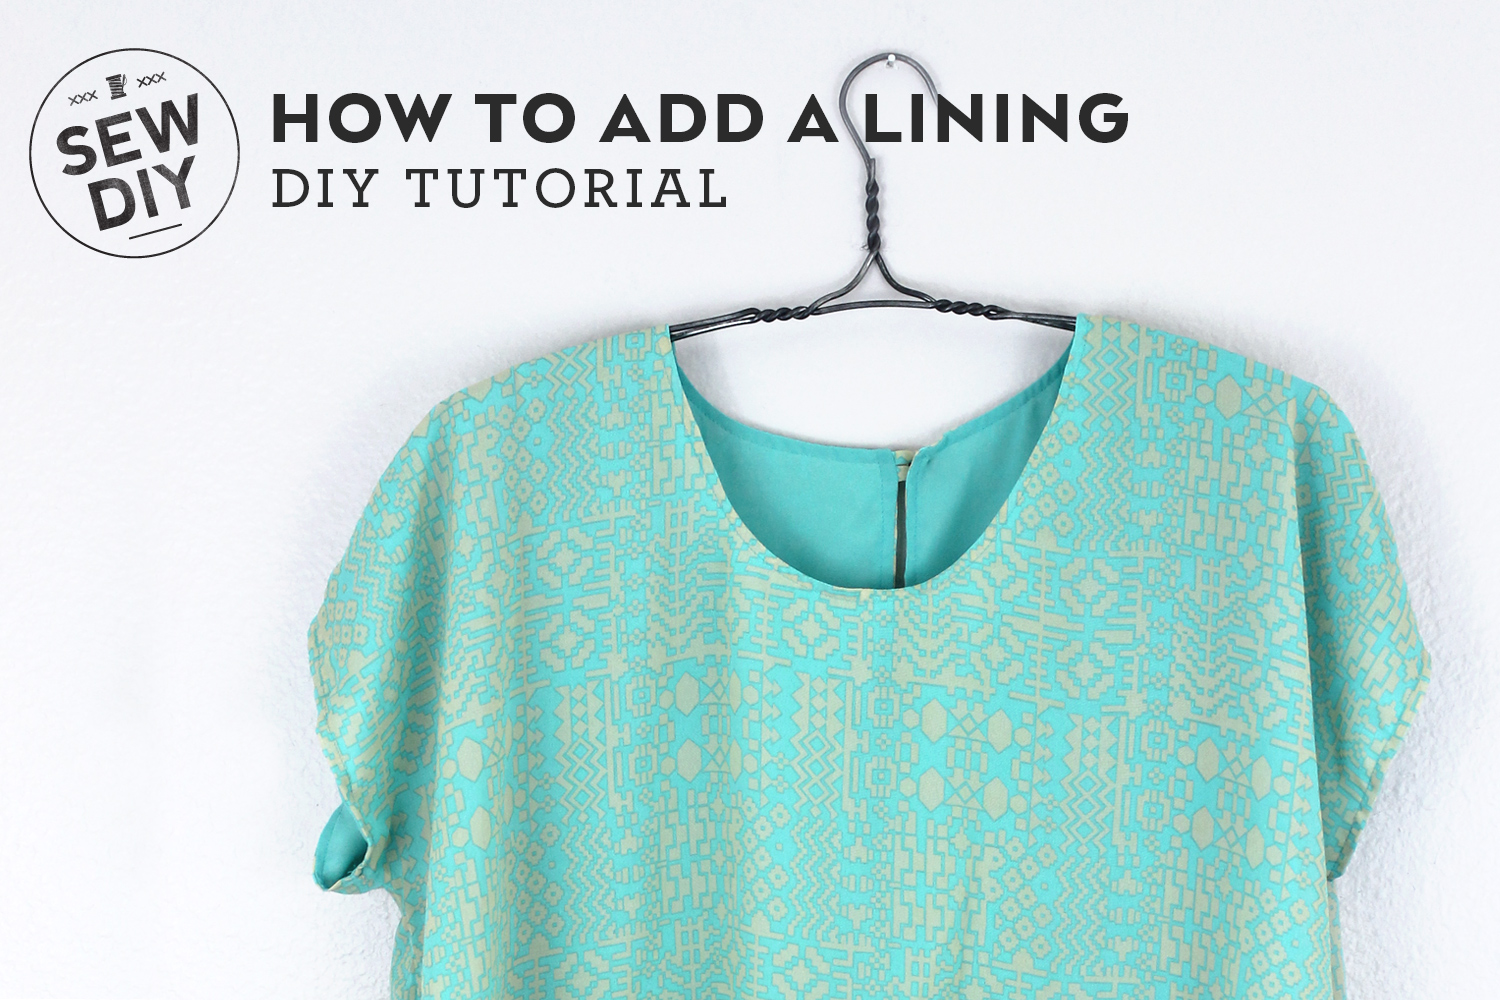 DIY Tutorial – How to add a lining to a top | Sew DIY